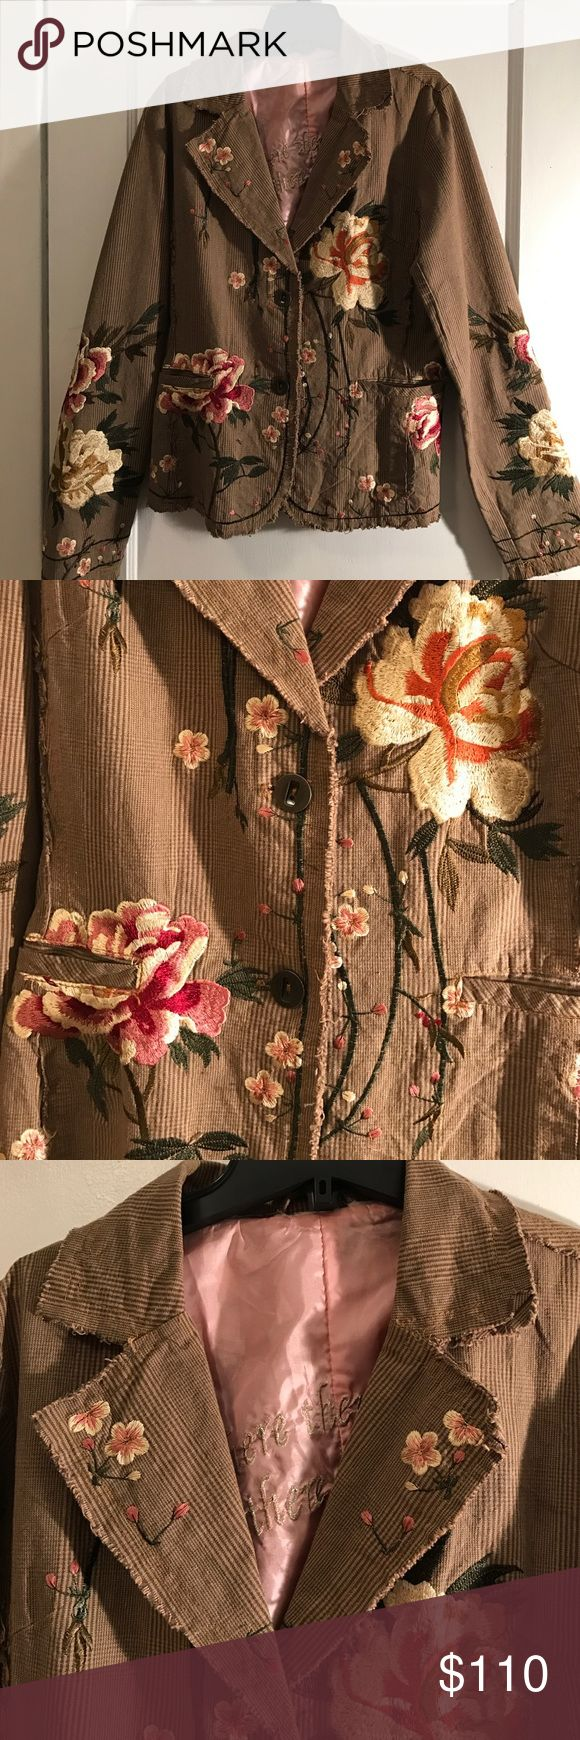 Johnny Was Embroidered blazer I LOVE this blazer This is the first Johnny Was item I ever purchased. It has the JW. embroidered flowers all over. Pinks, creams, corals, greens browns. The fabric on the jacket is light brown & darker brown. Similar to a houndstooth. There are 2 front pockets size L. Length 26 inches. I've put this in my listings twice before. But never got close to what I was asking for it. I know what it's worth. I will put it for sale until 3:00pm tomorrow. Firm price Thank…